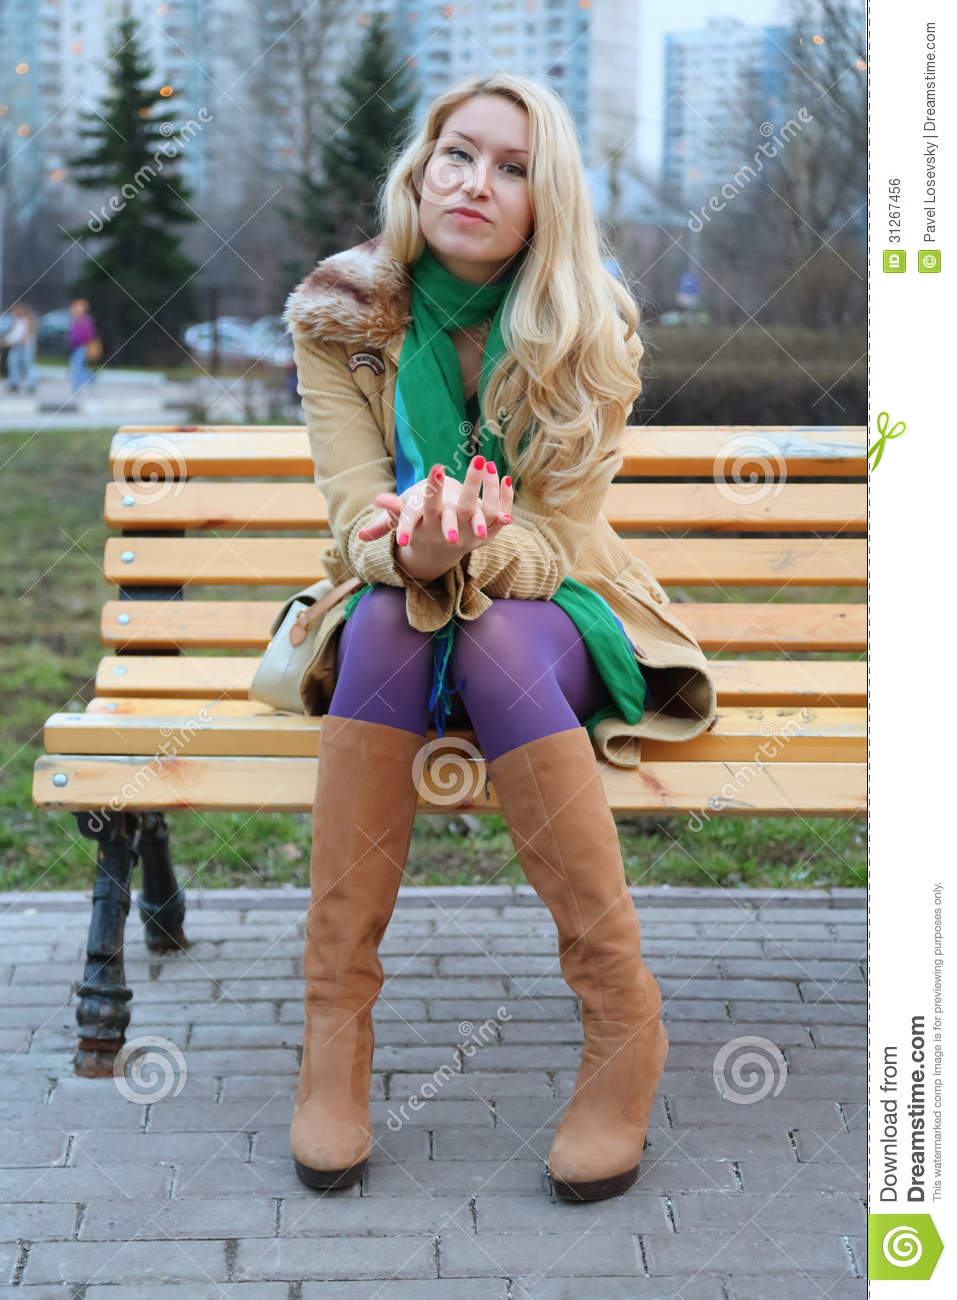 Cute girl sitting on a bench.